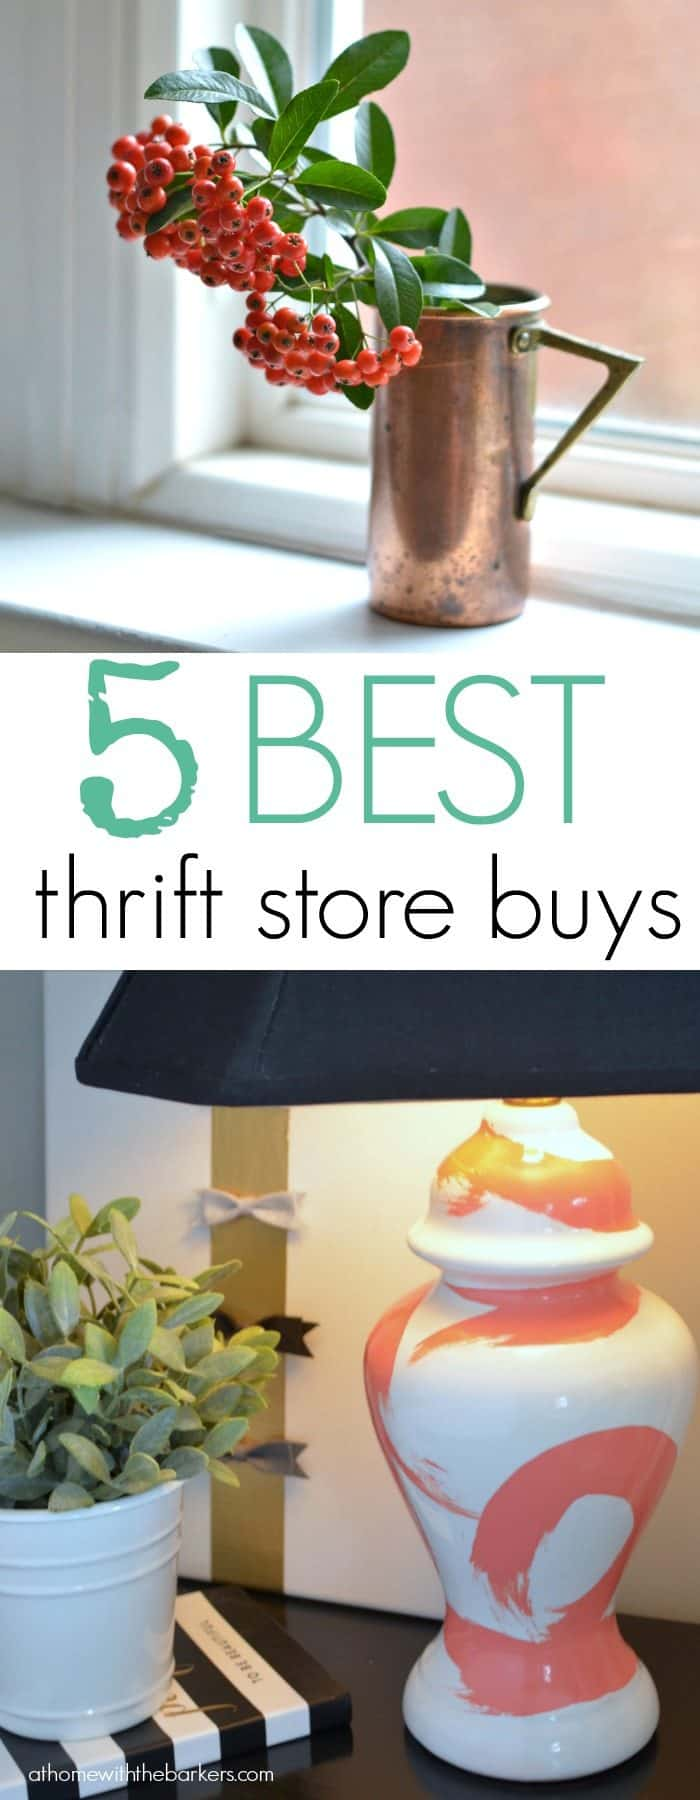 5 Best Thrift Store Buys for the home decorating lover / athomewiththebarkers.com